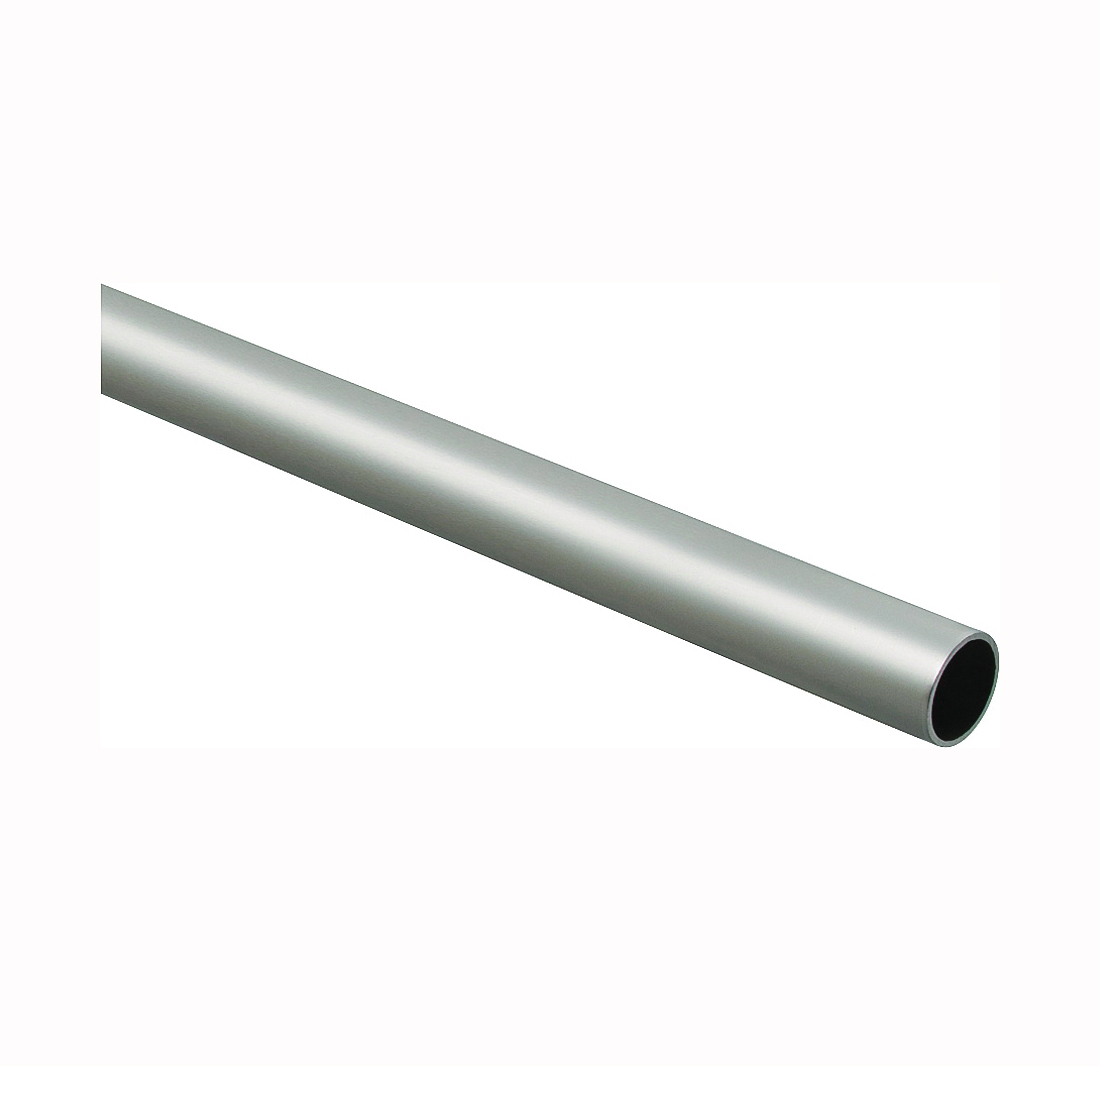 Picture of National Hardware BB8604 Series S822-101 Closet Rod, 1-5/16 in Dia, 8 ft L, Steel, Satin Nickel